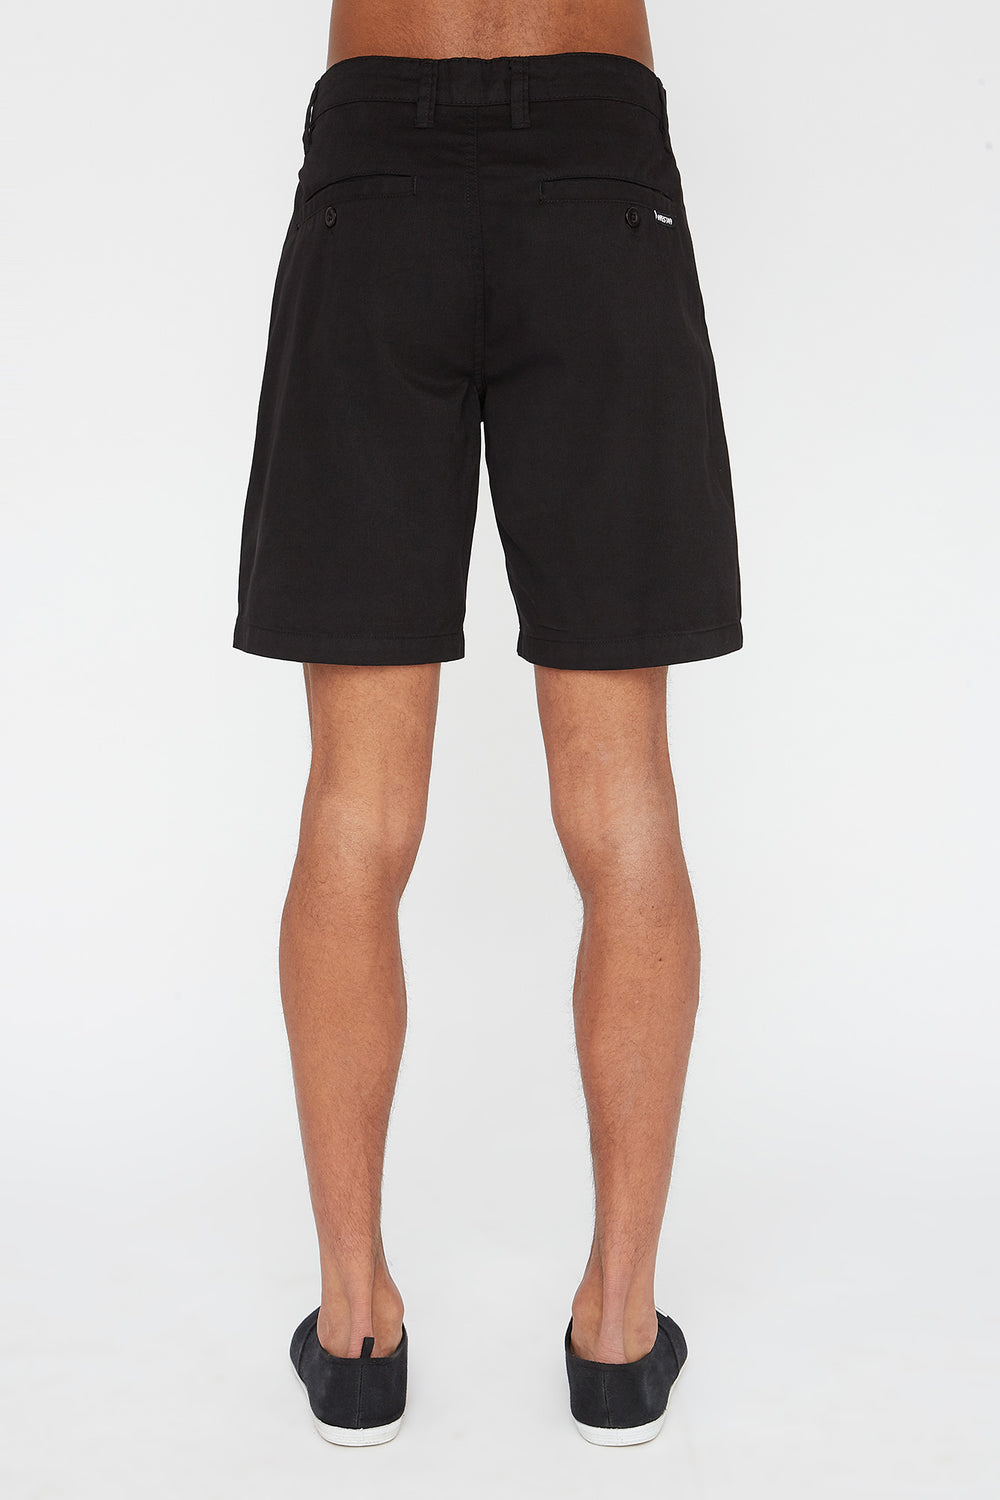 Short Coupe Etroite West49 Homme Noir